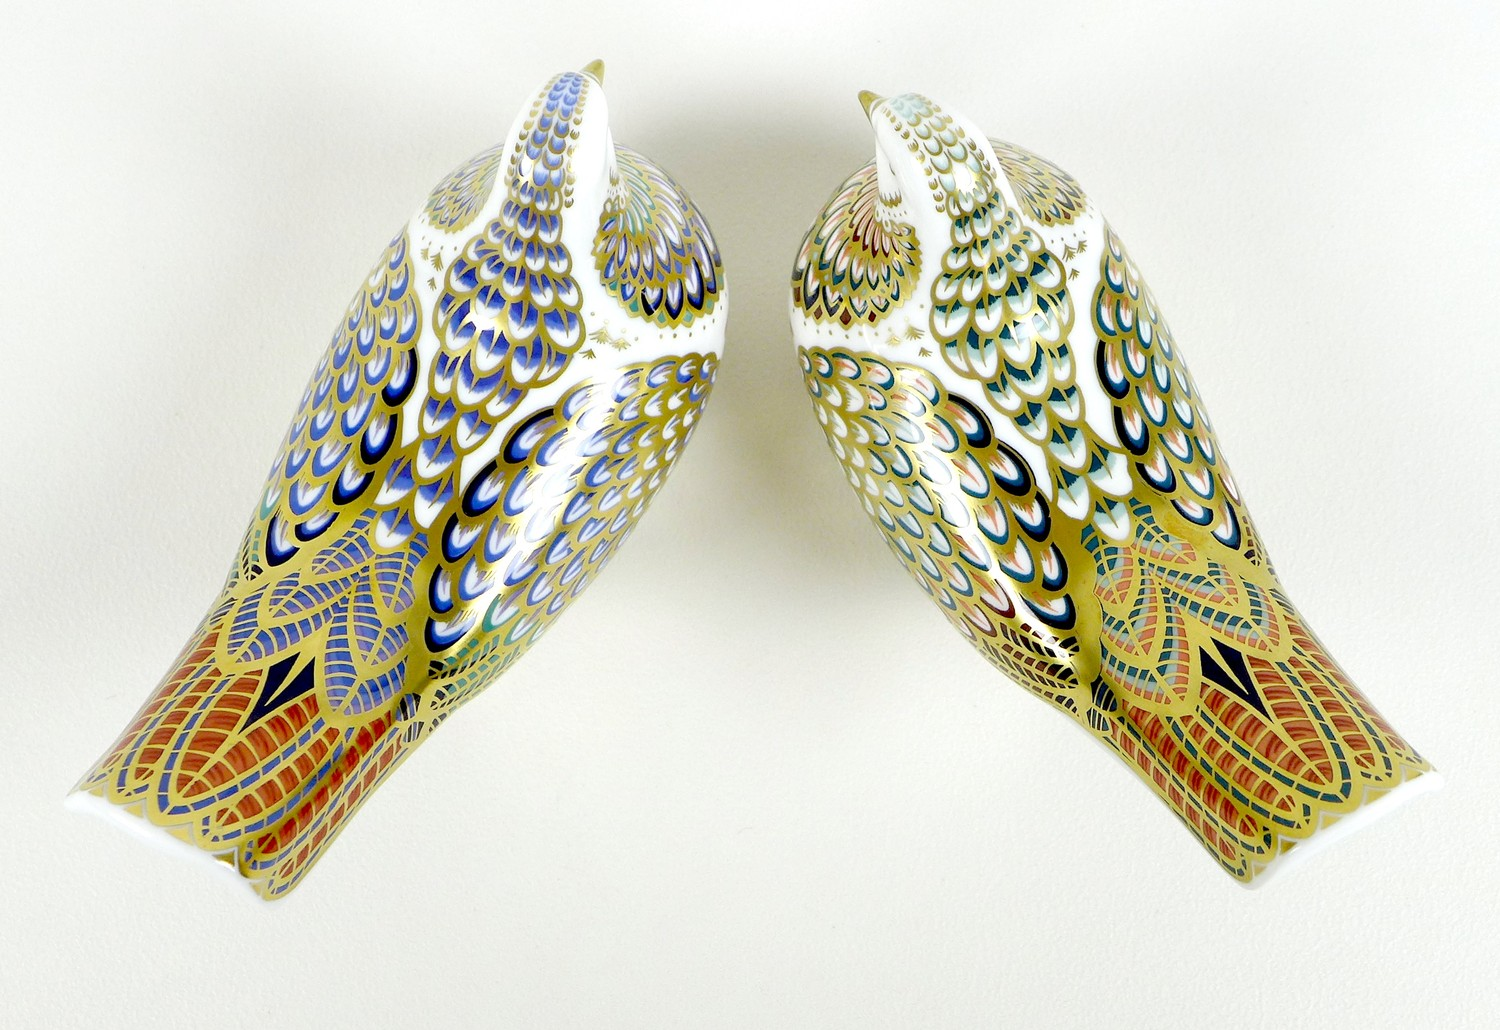 Two Royal Crown Derby paperweights, comprising 'Millenium Dove', limited edition 1130/1500, an - Image 5 of 8